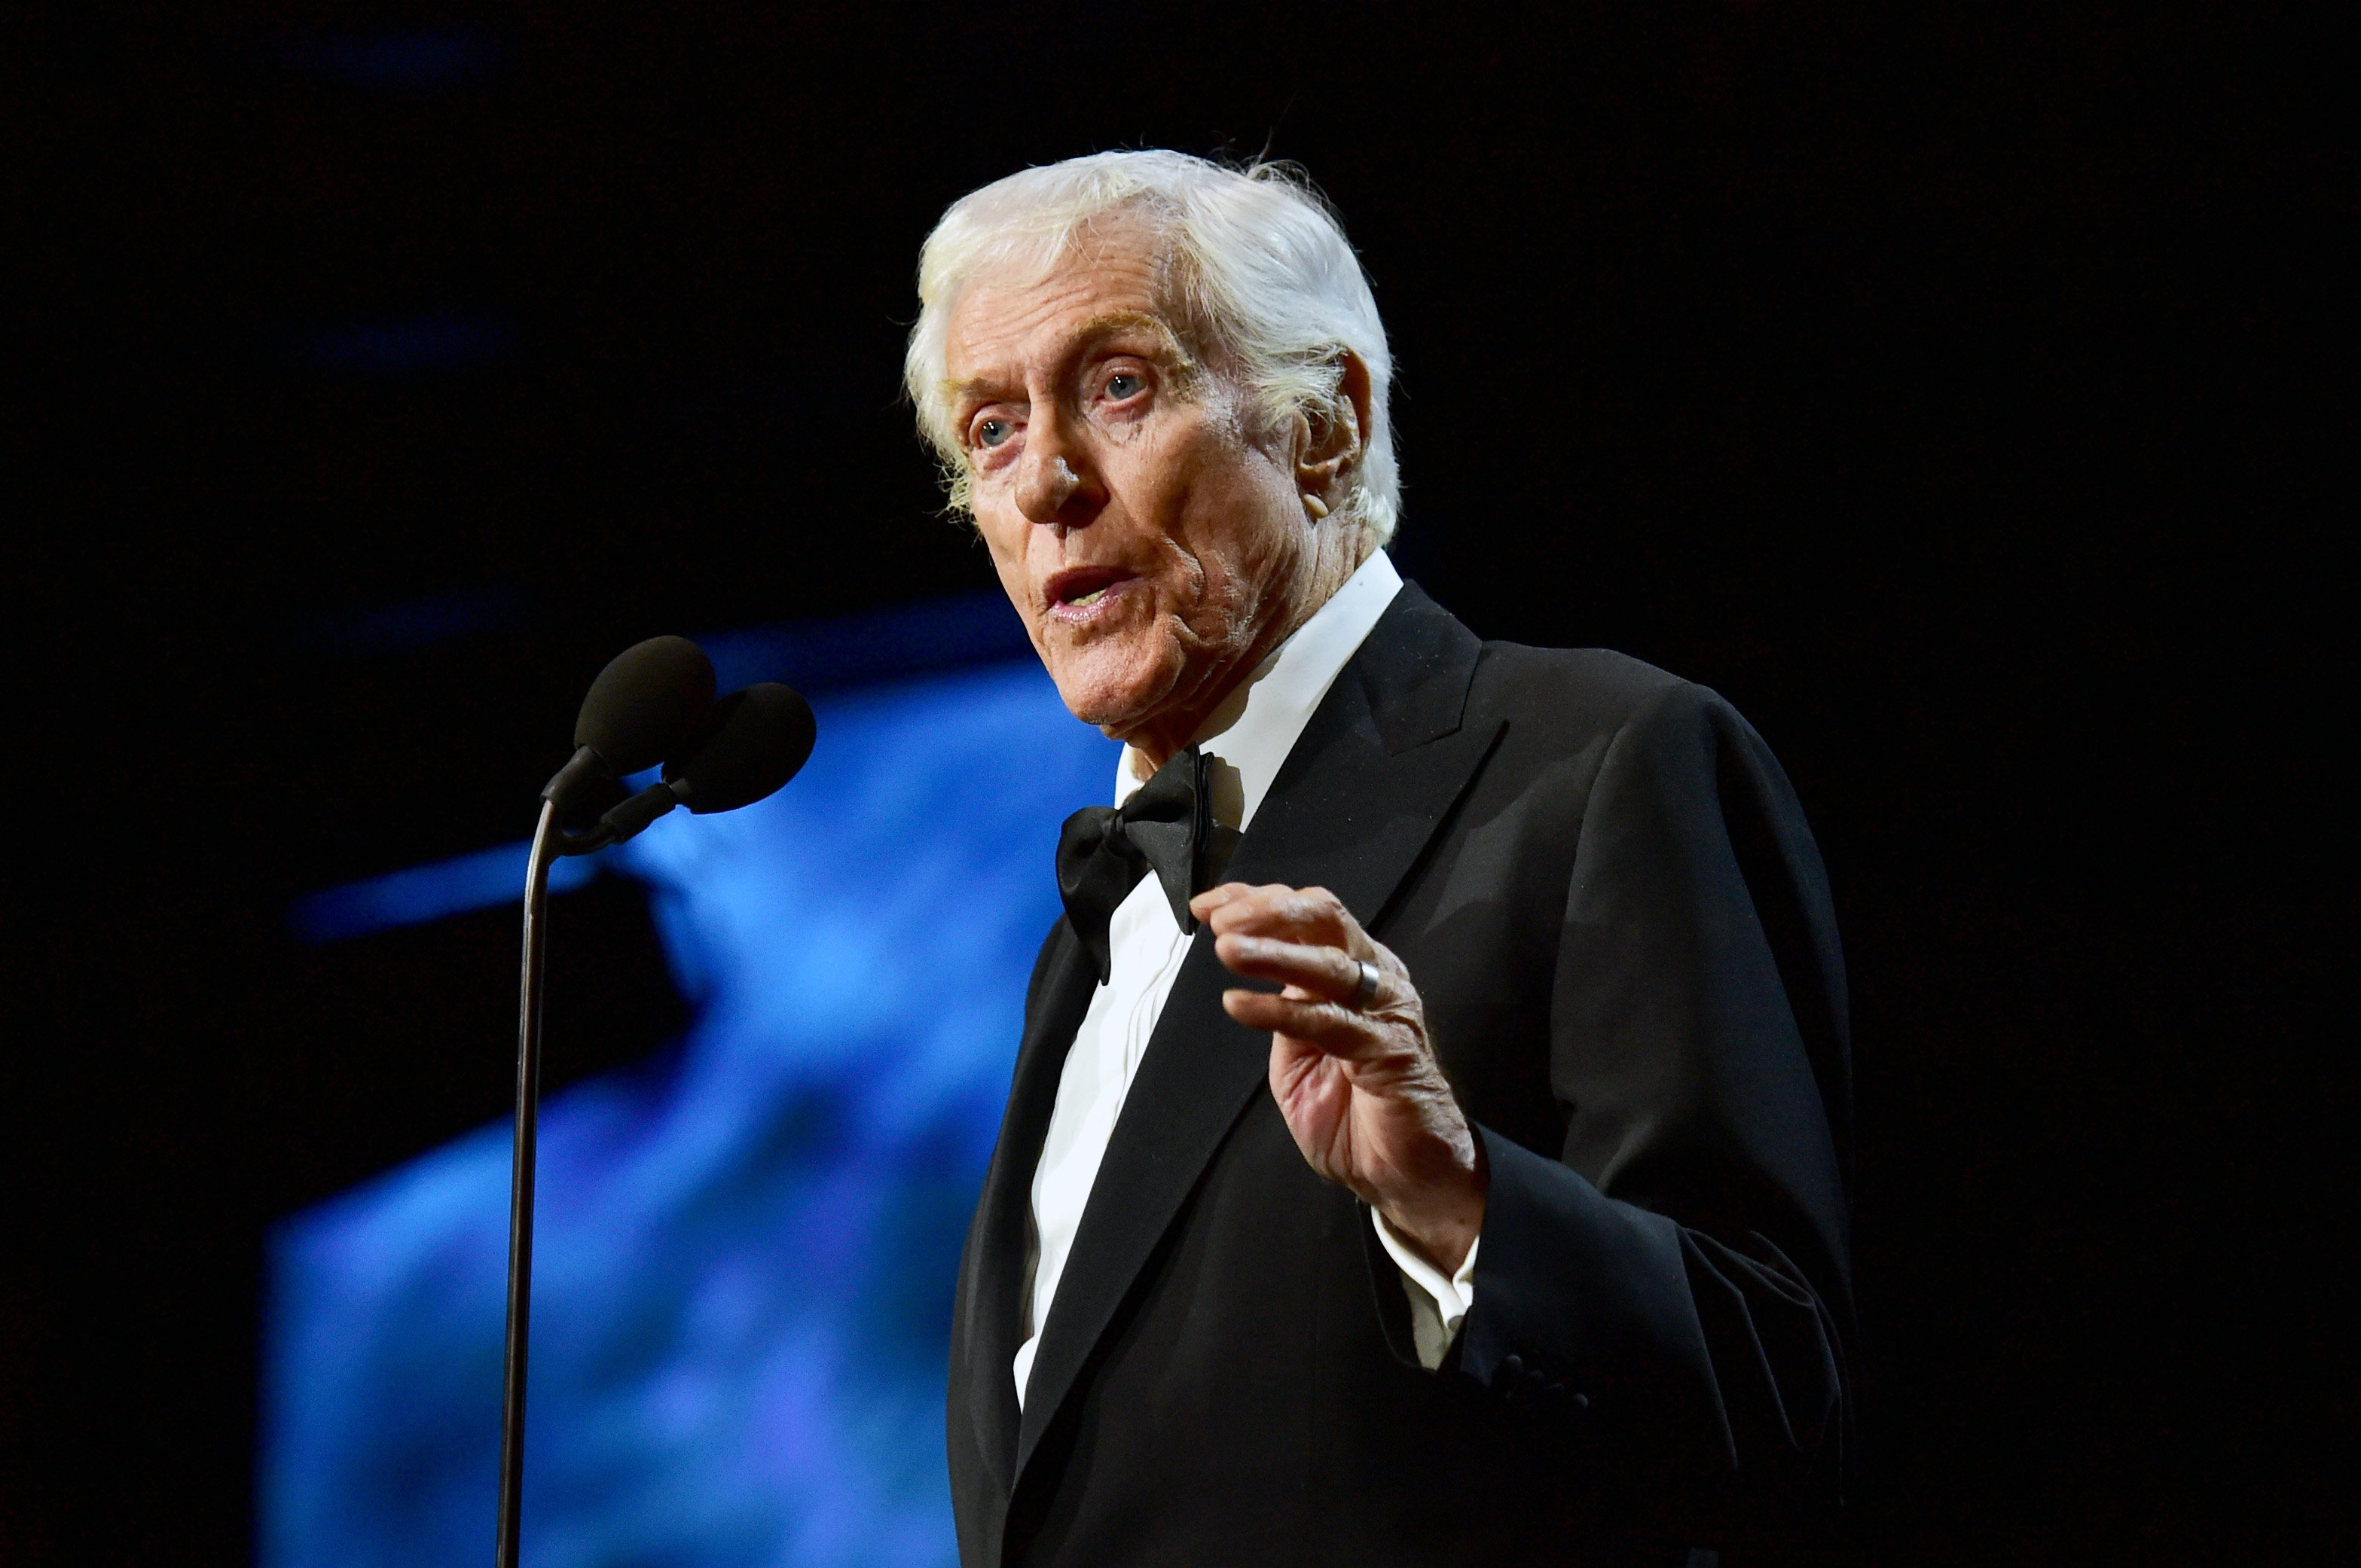 Dick Van Dyke on October 27, 2017 in Beverly Hills, California | Source: Getty Images